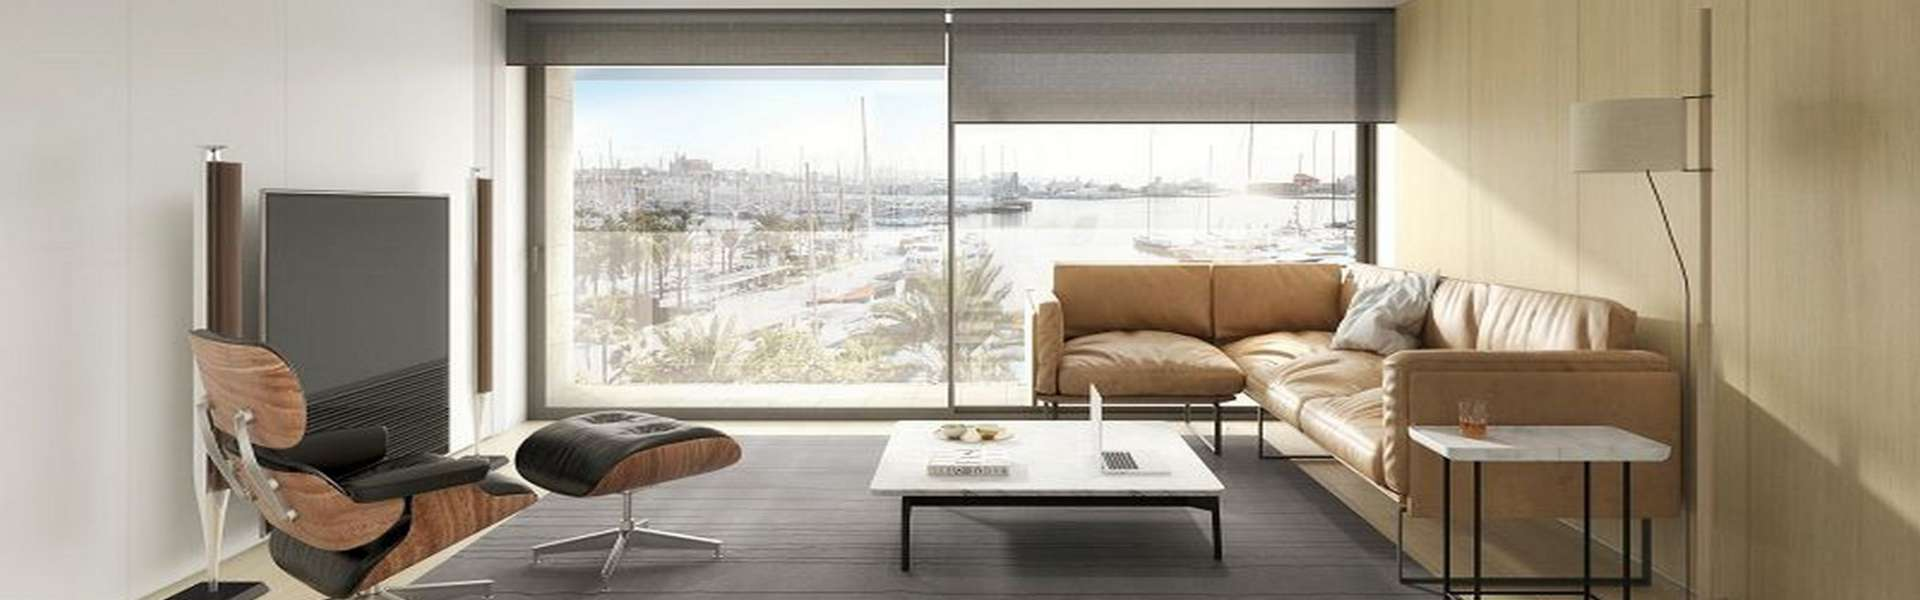 Palma/Paseo Marítimo - Nice apartment with modern design and spectacular views